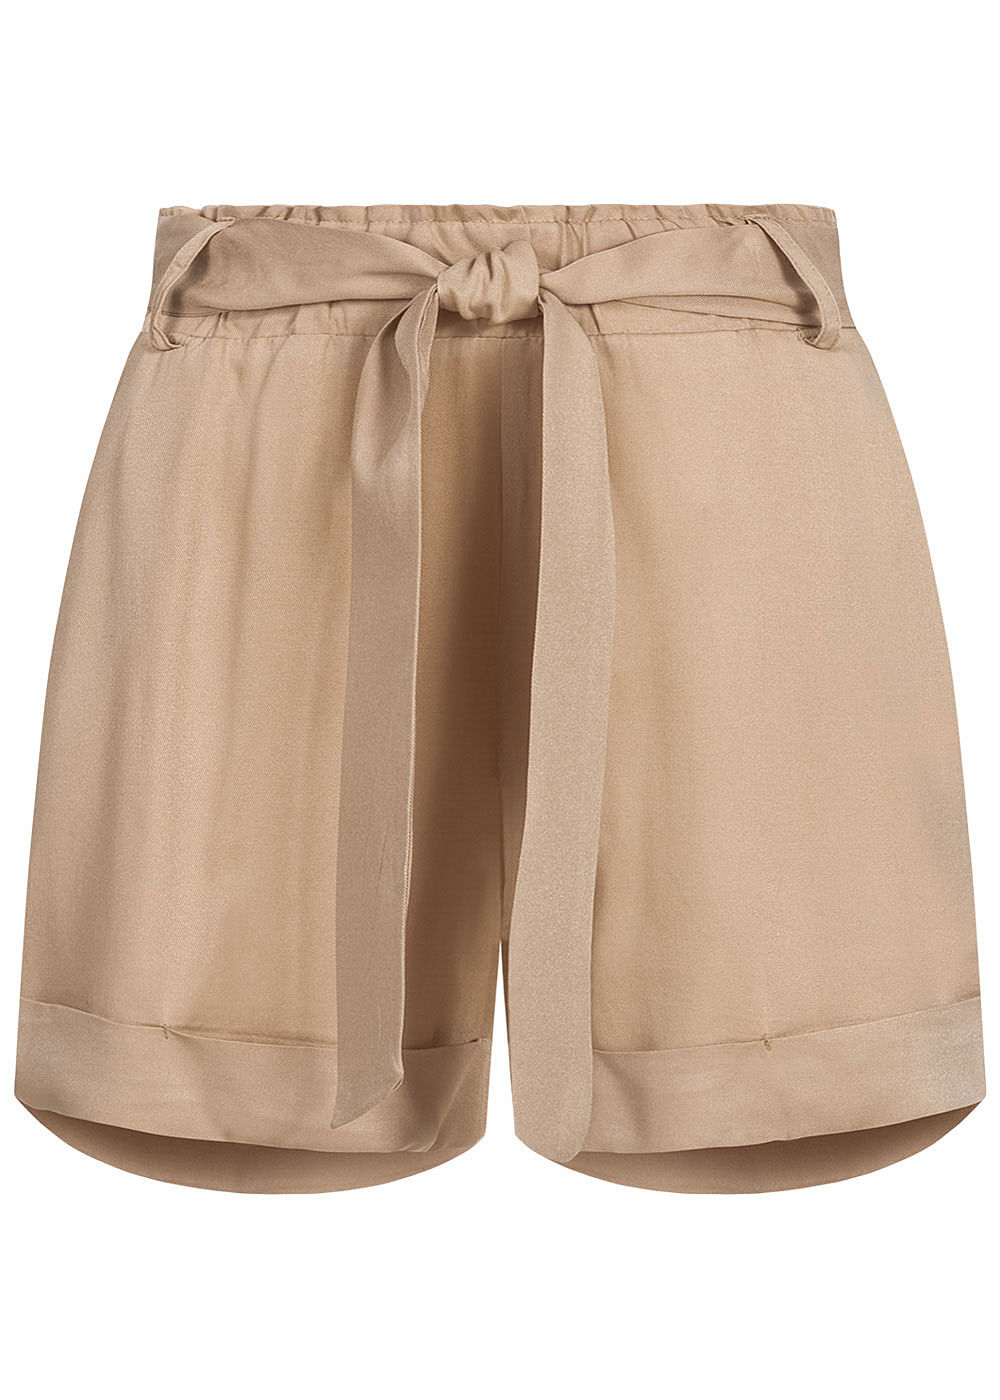 Hailys Damen Shorts 2-Pockets inkl. Bindegürtel Beinumschlag beige - Art.-Nr.: 20052765